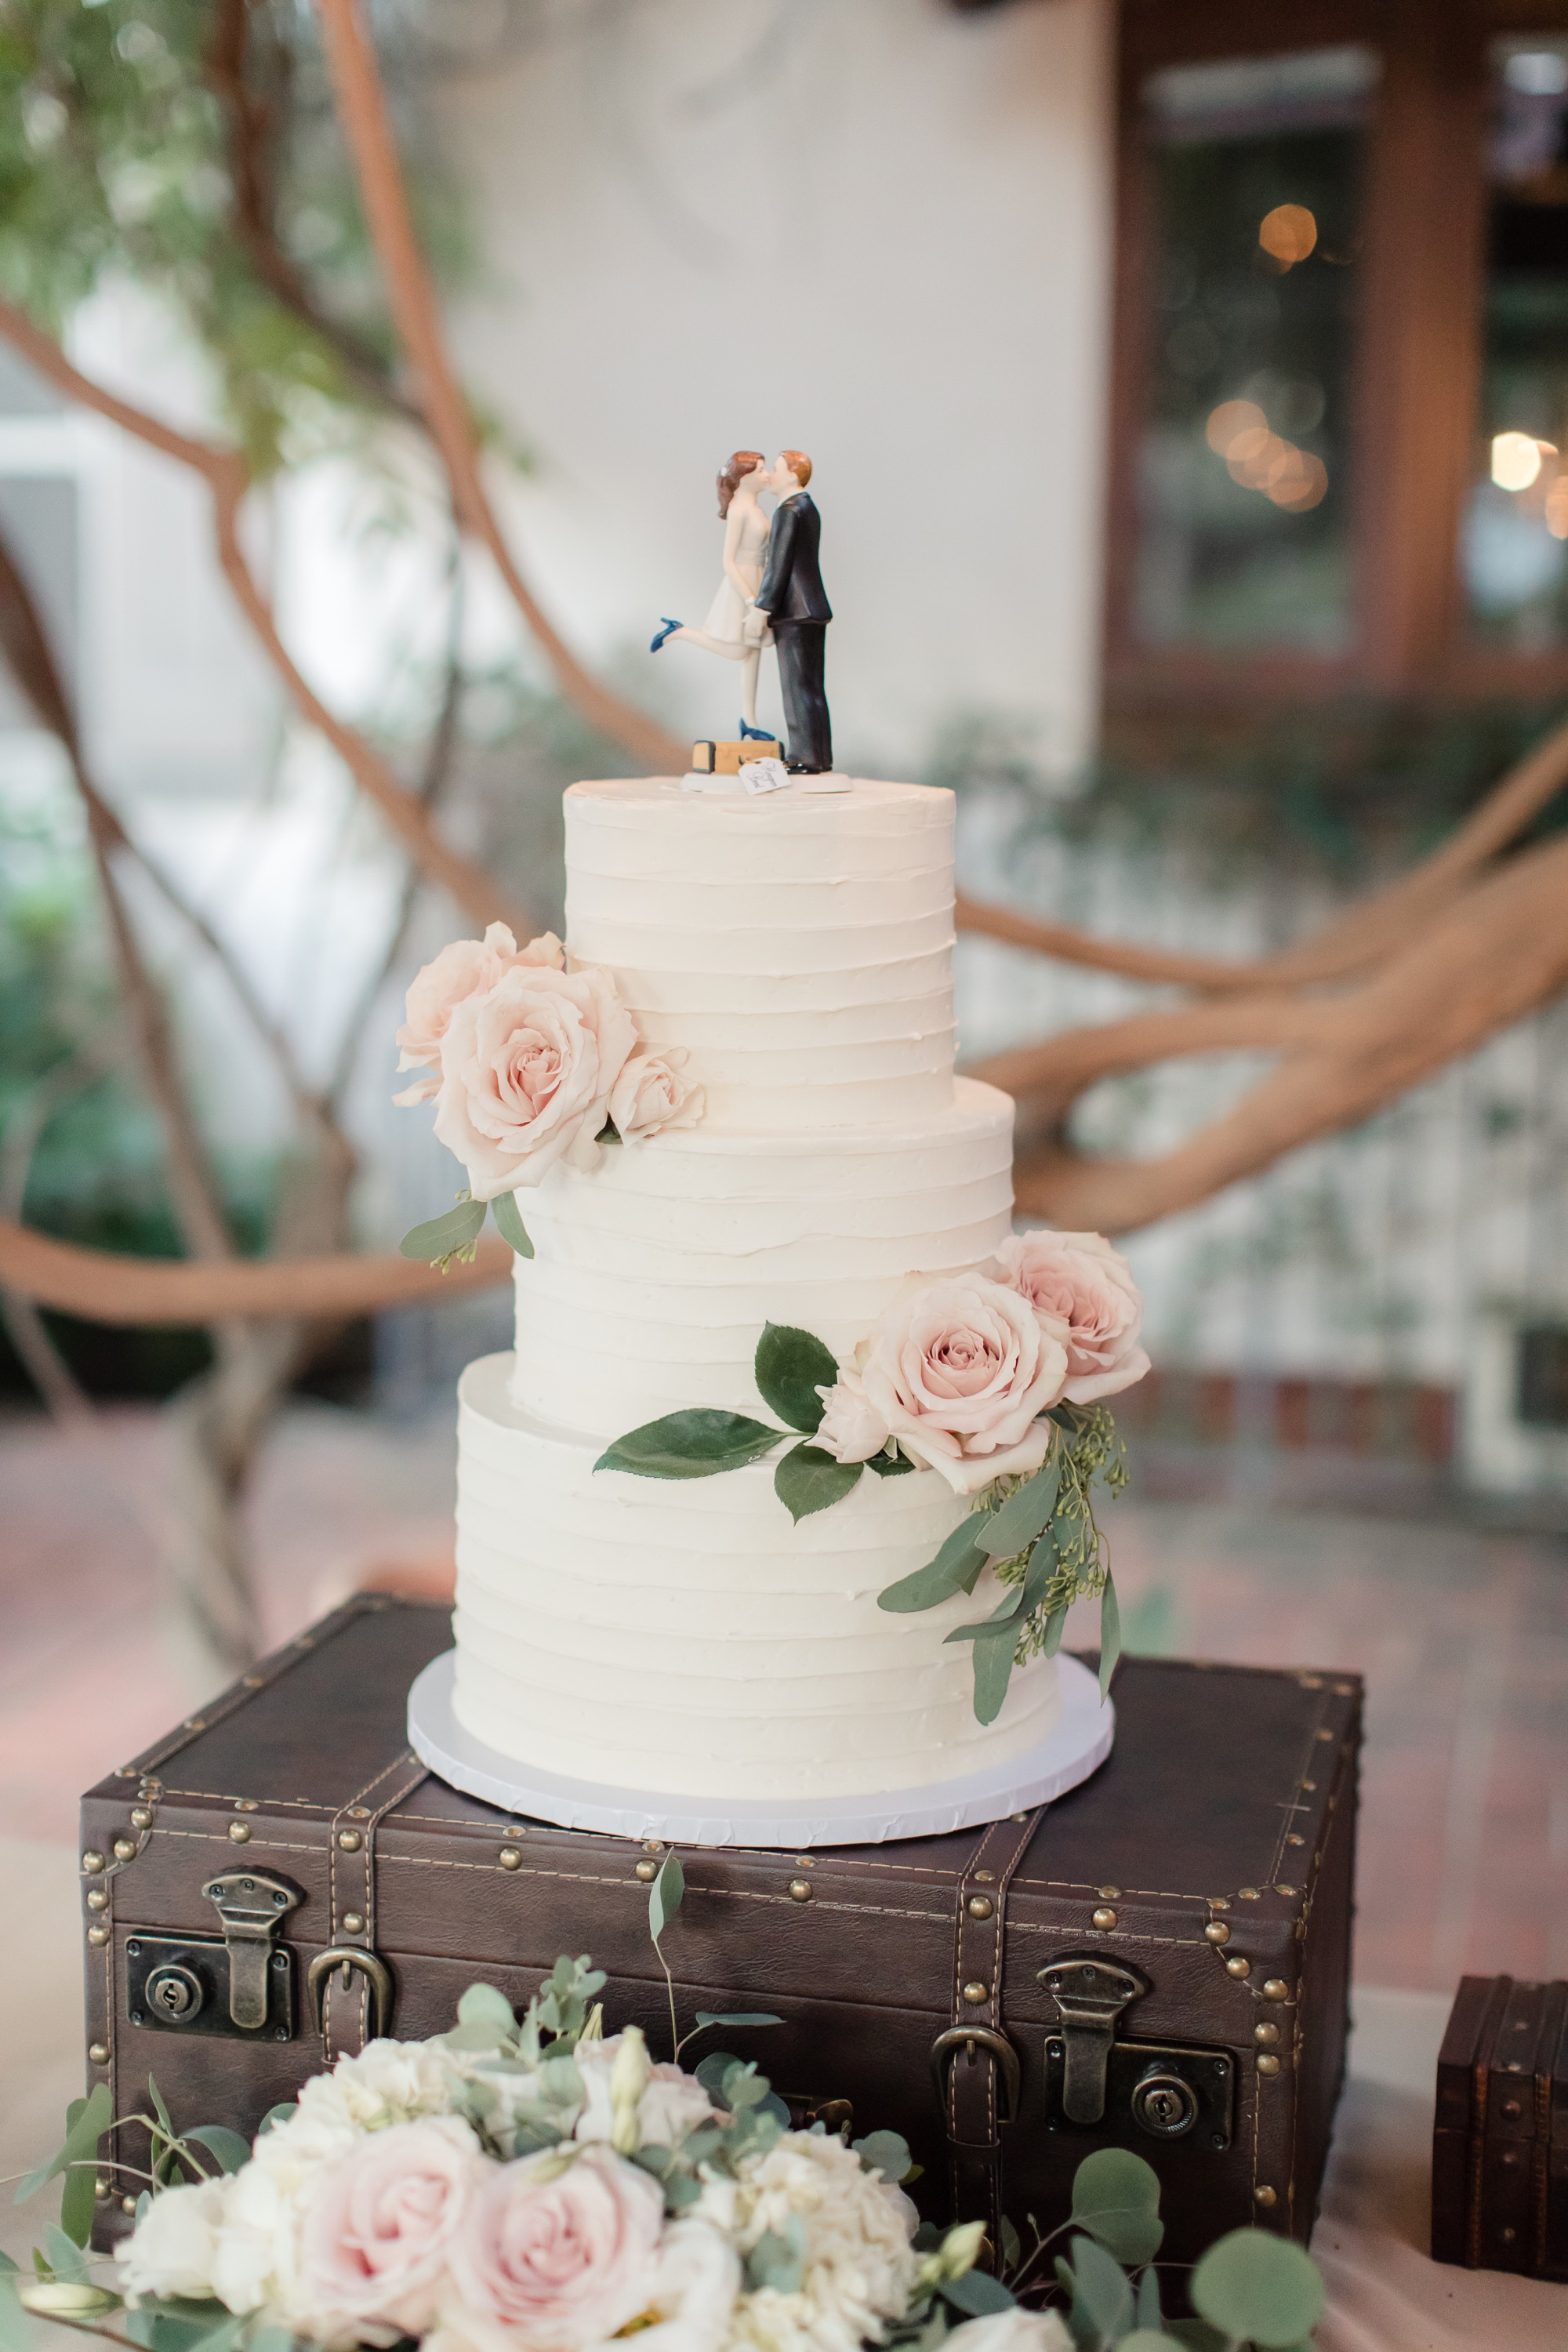 Figlewicz Photography | wheat & honey event coordination at quail ranch, wedding cake